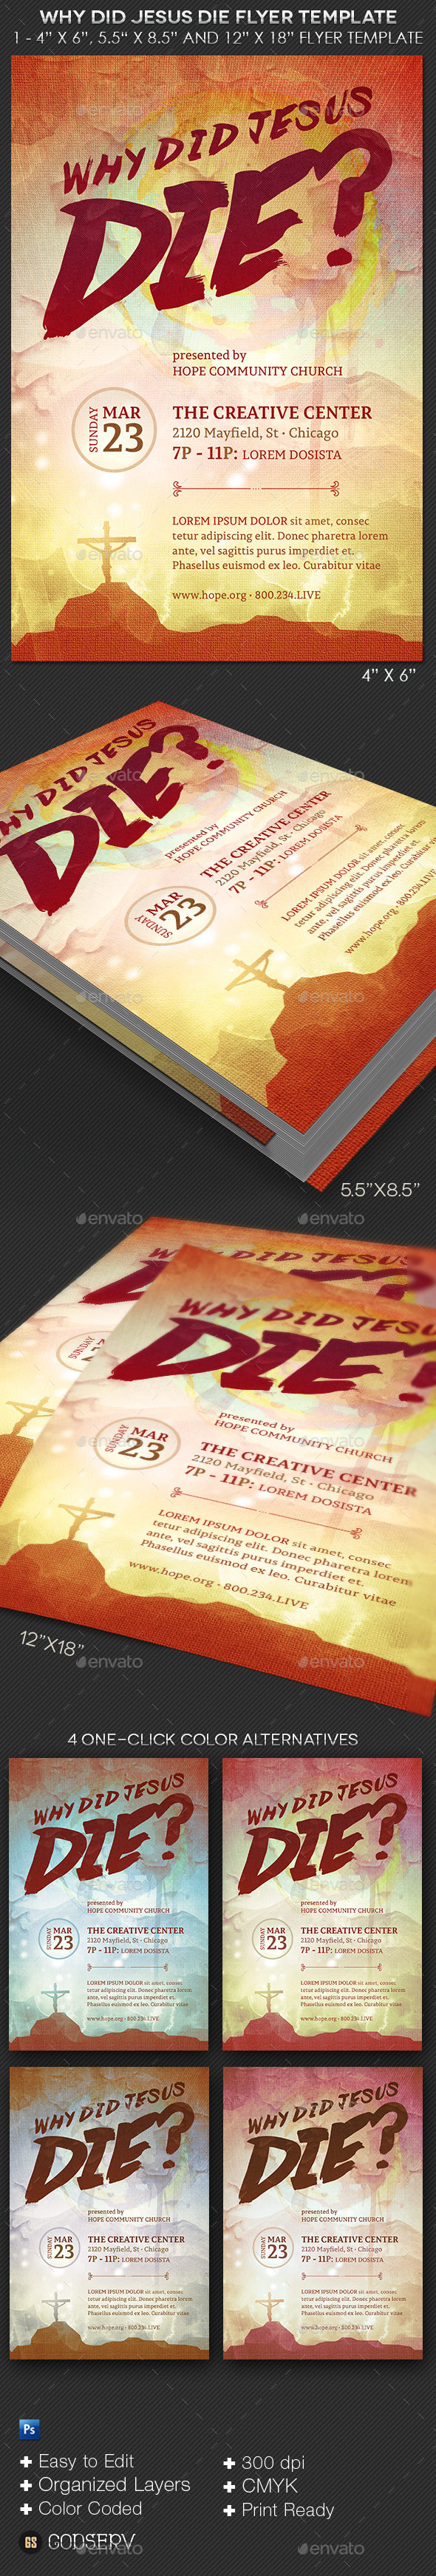 Why Jesus Die Church Flyer Template - Church Flyers